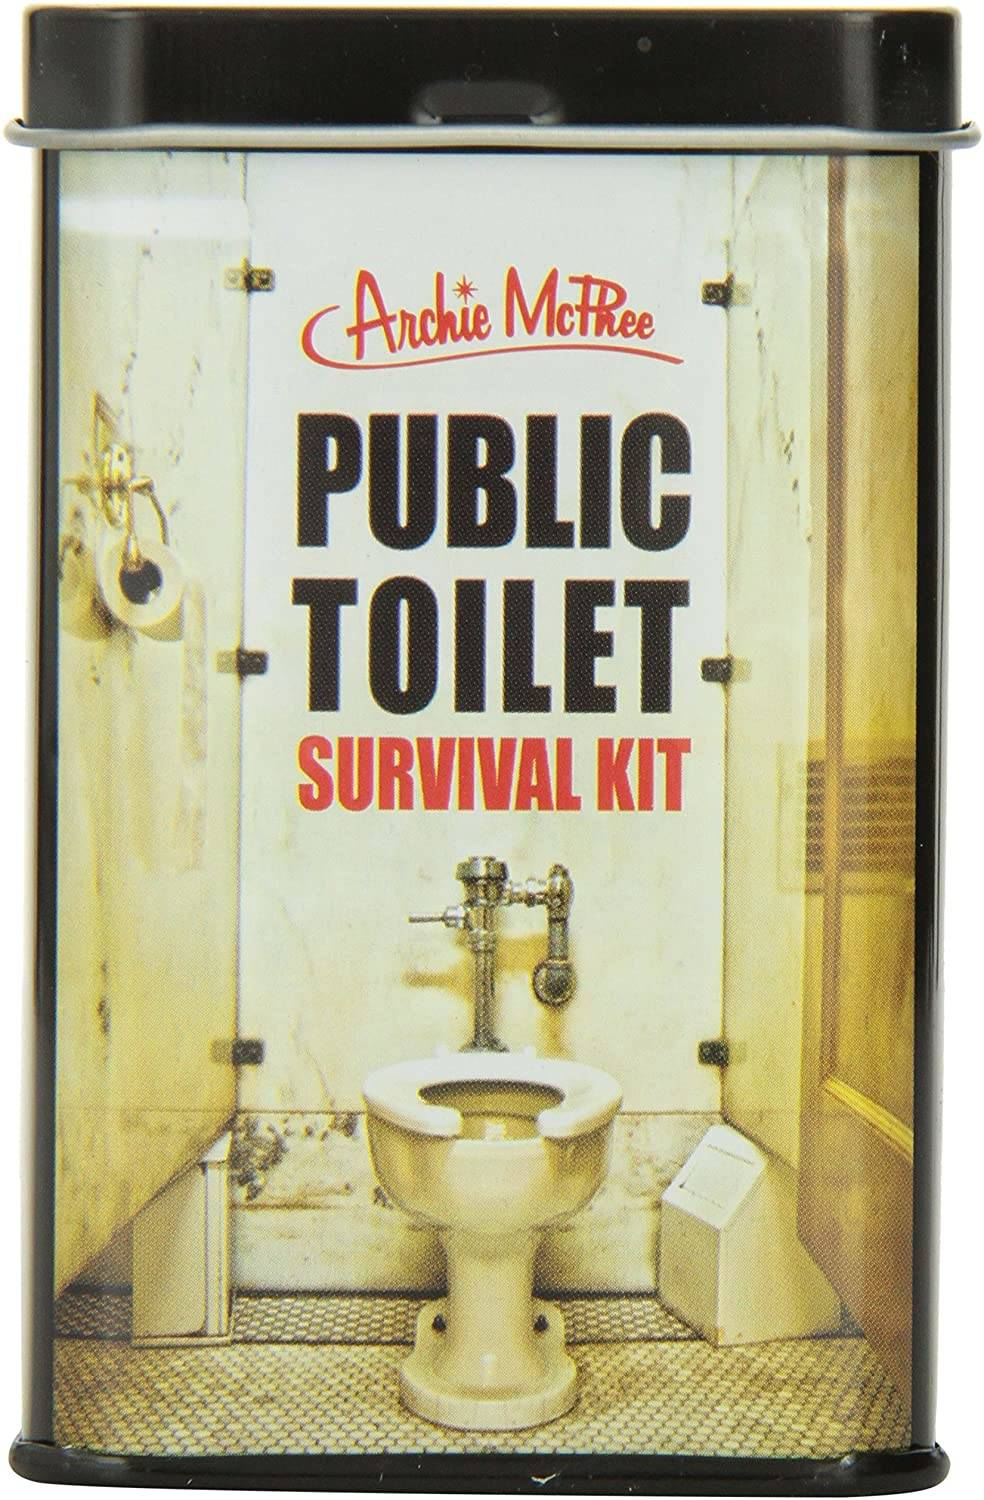 survival kit product ad